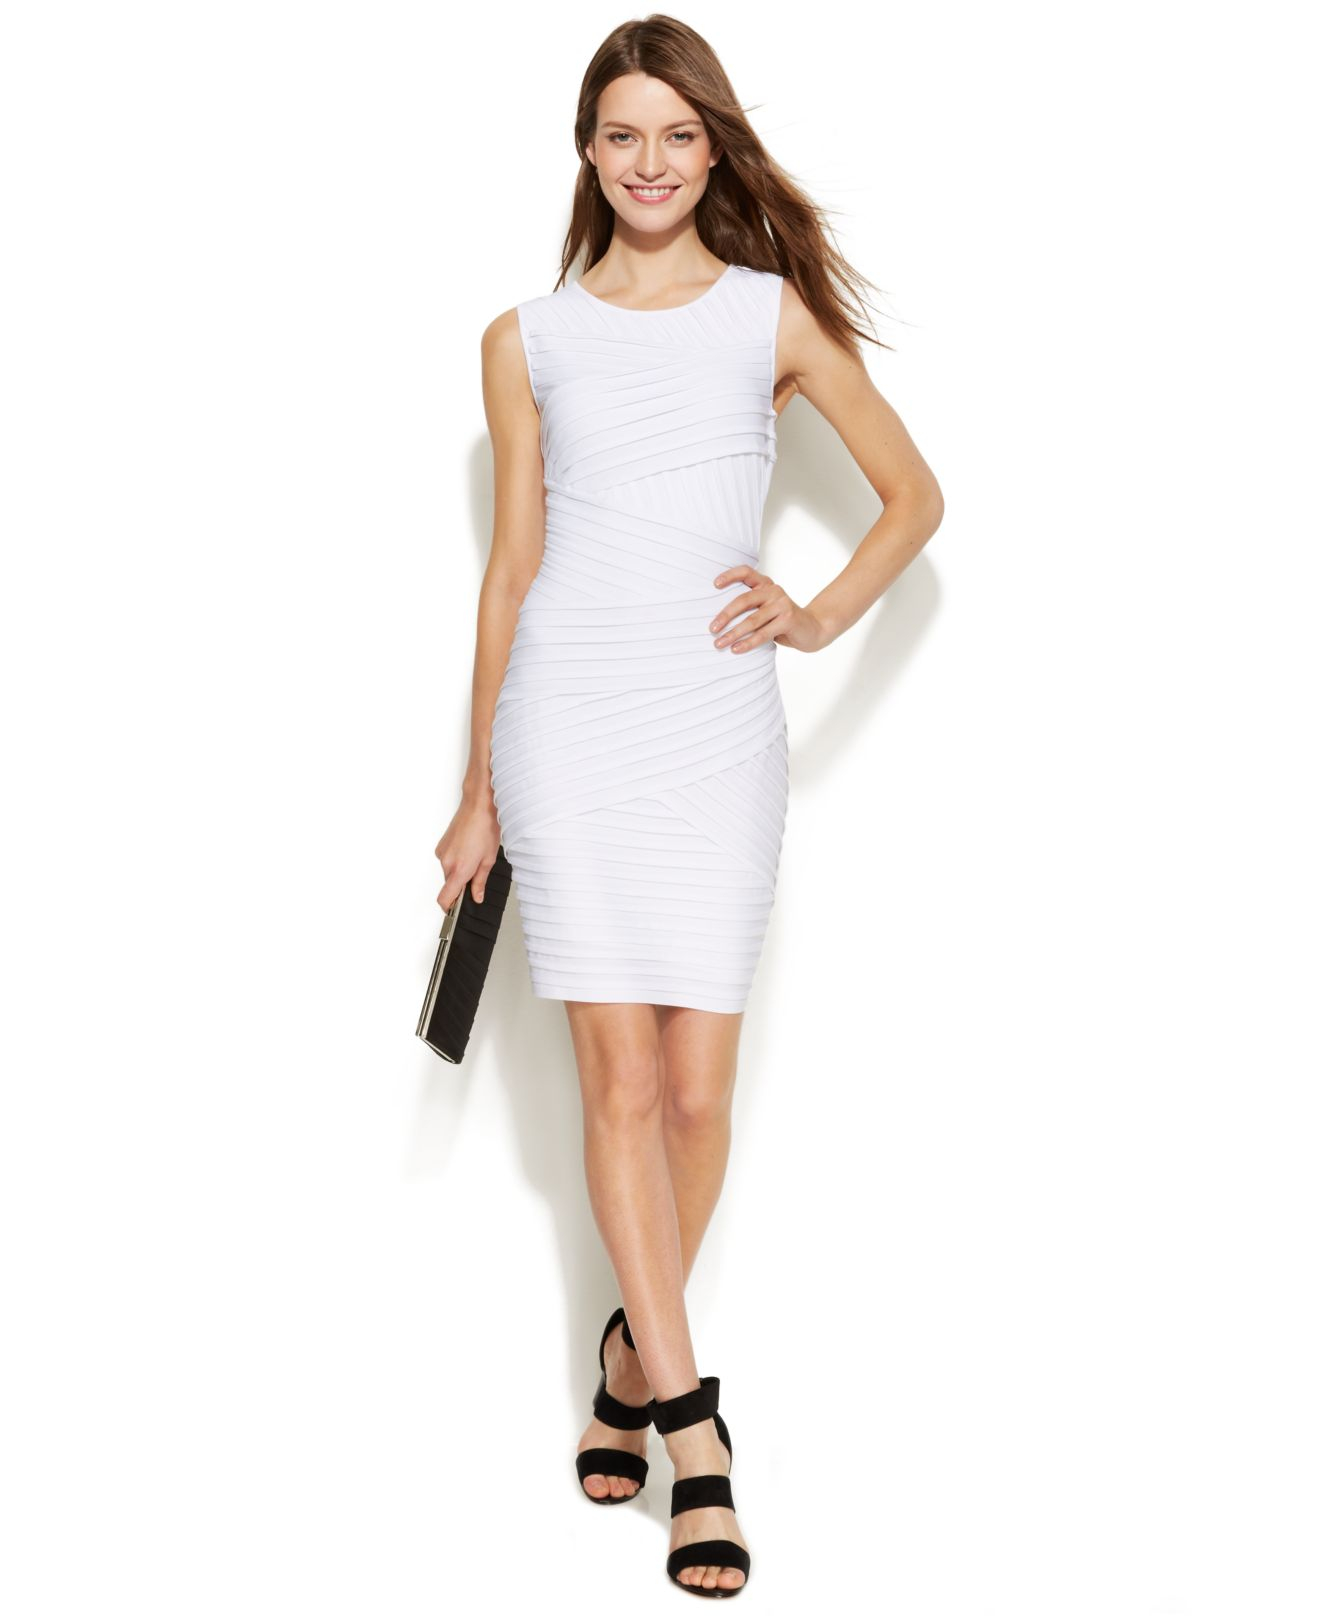 eacbf6c4e786d Lyst - Calvin Klein Sleeveless Bandage Sheath in White